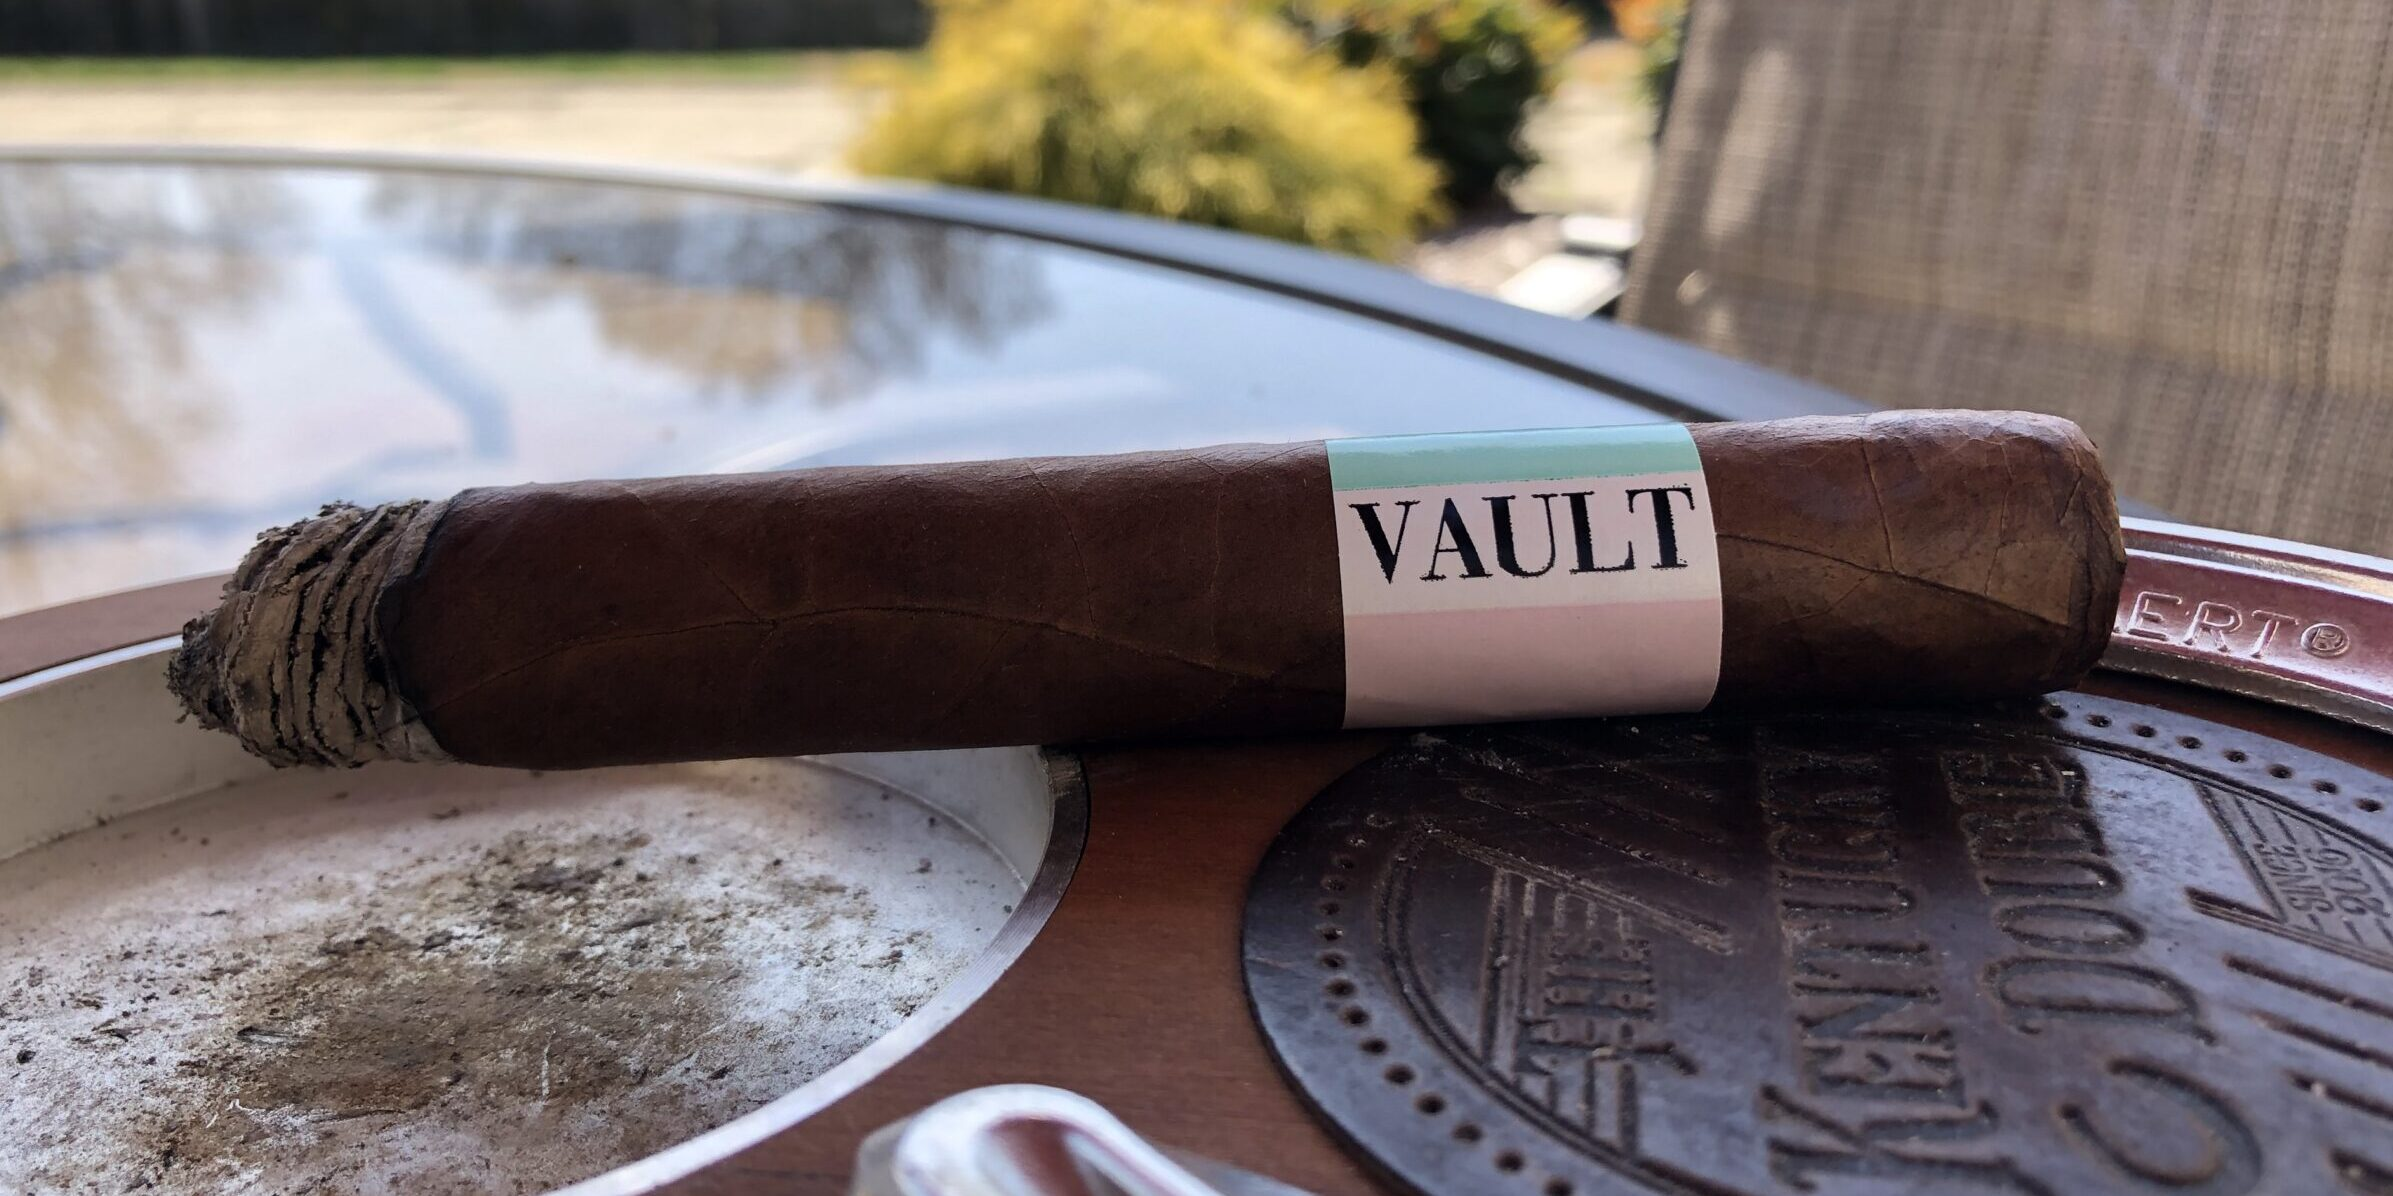 You are currently viewing Vault Series 1 Toro by Raices Cubanas Farm & Factory Cigar Review